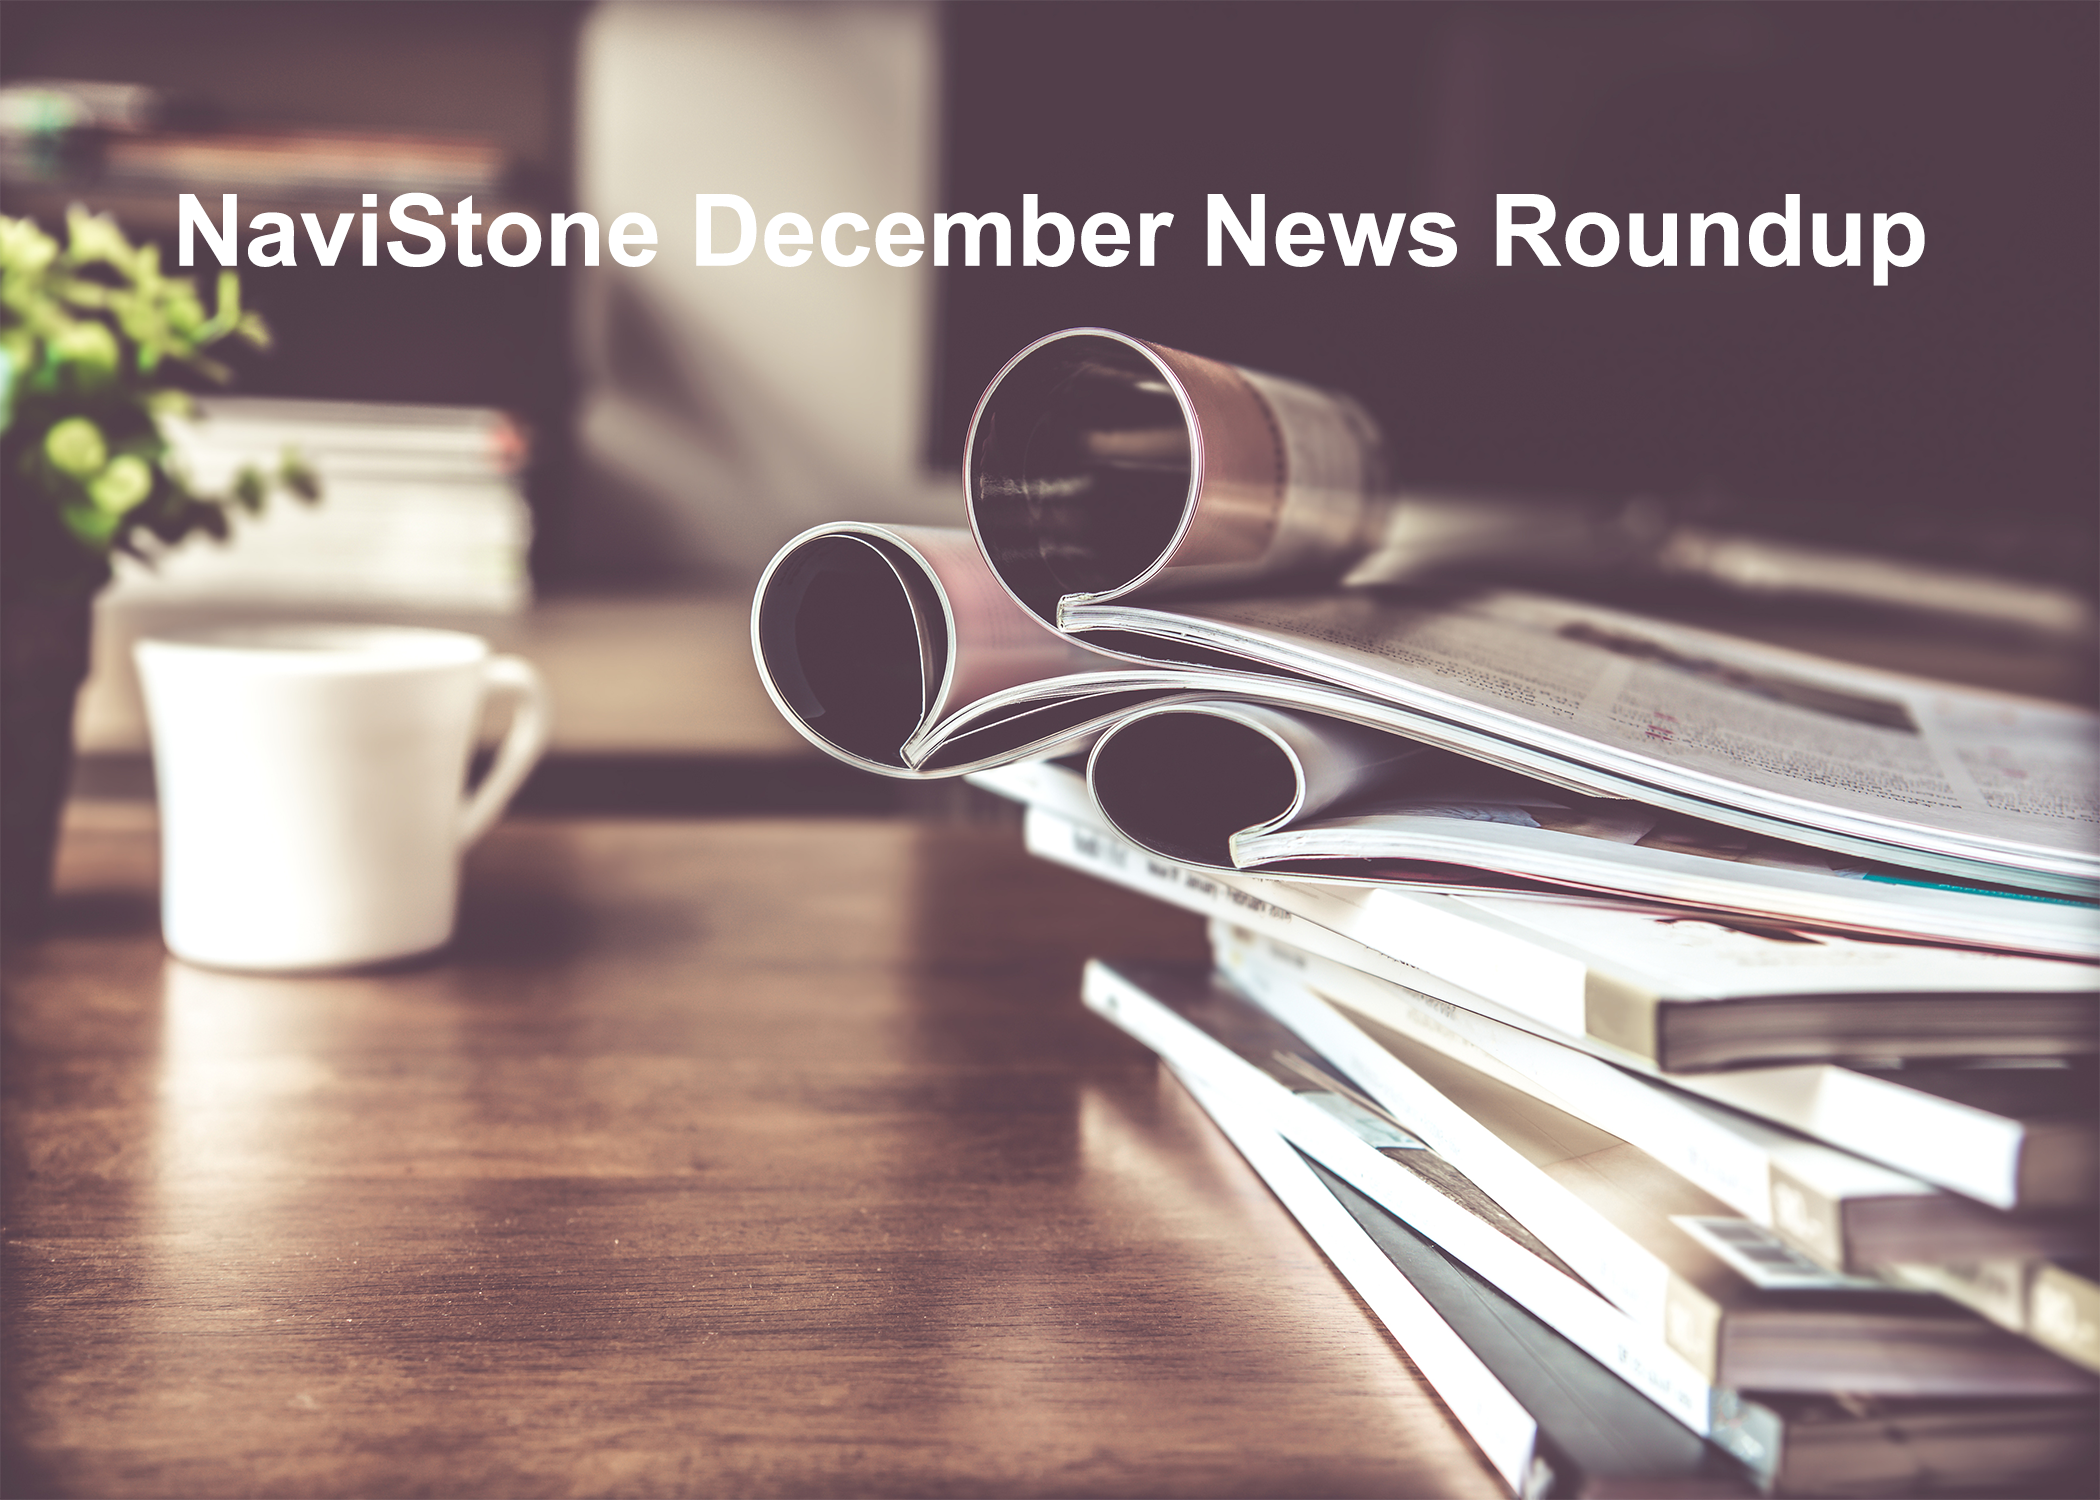 NaviStone December News Roundup